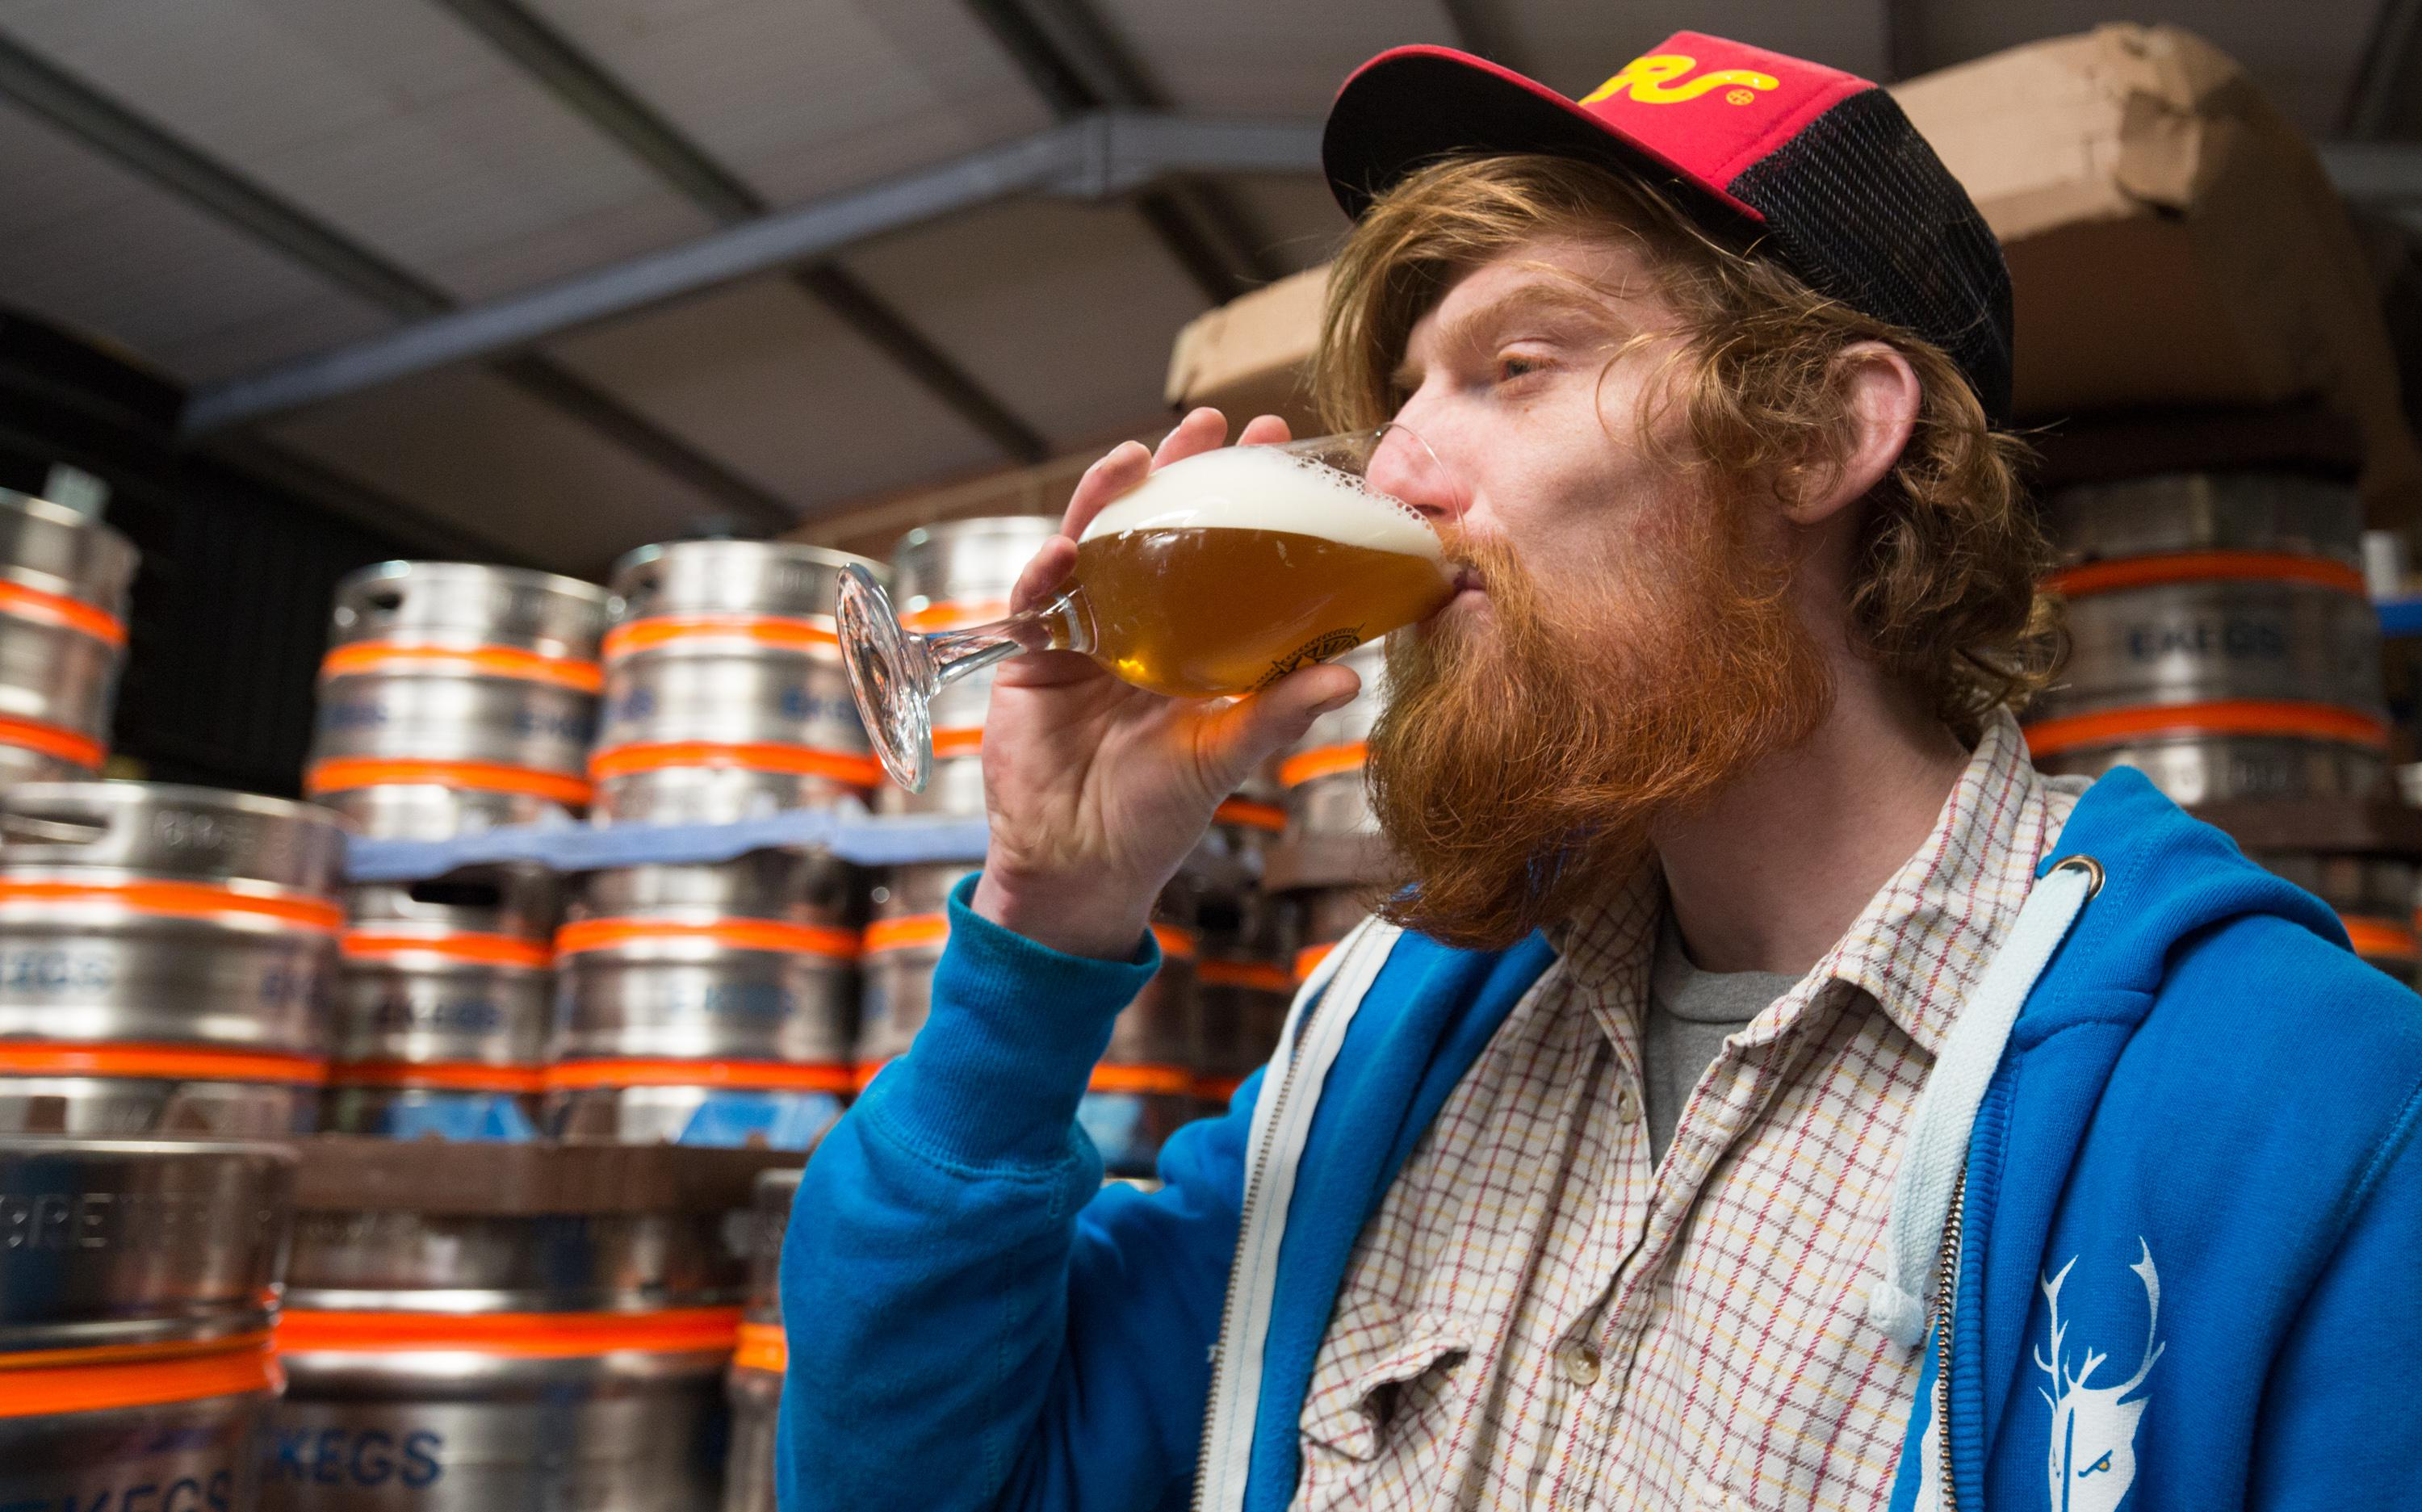 James Bardgett checks the quality of beer before filling up kegs and barrels to be dispatched at the Wild Beer Co brewery at Lower Westcombe Farm on February 11, 2016 near Evercreech, England.